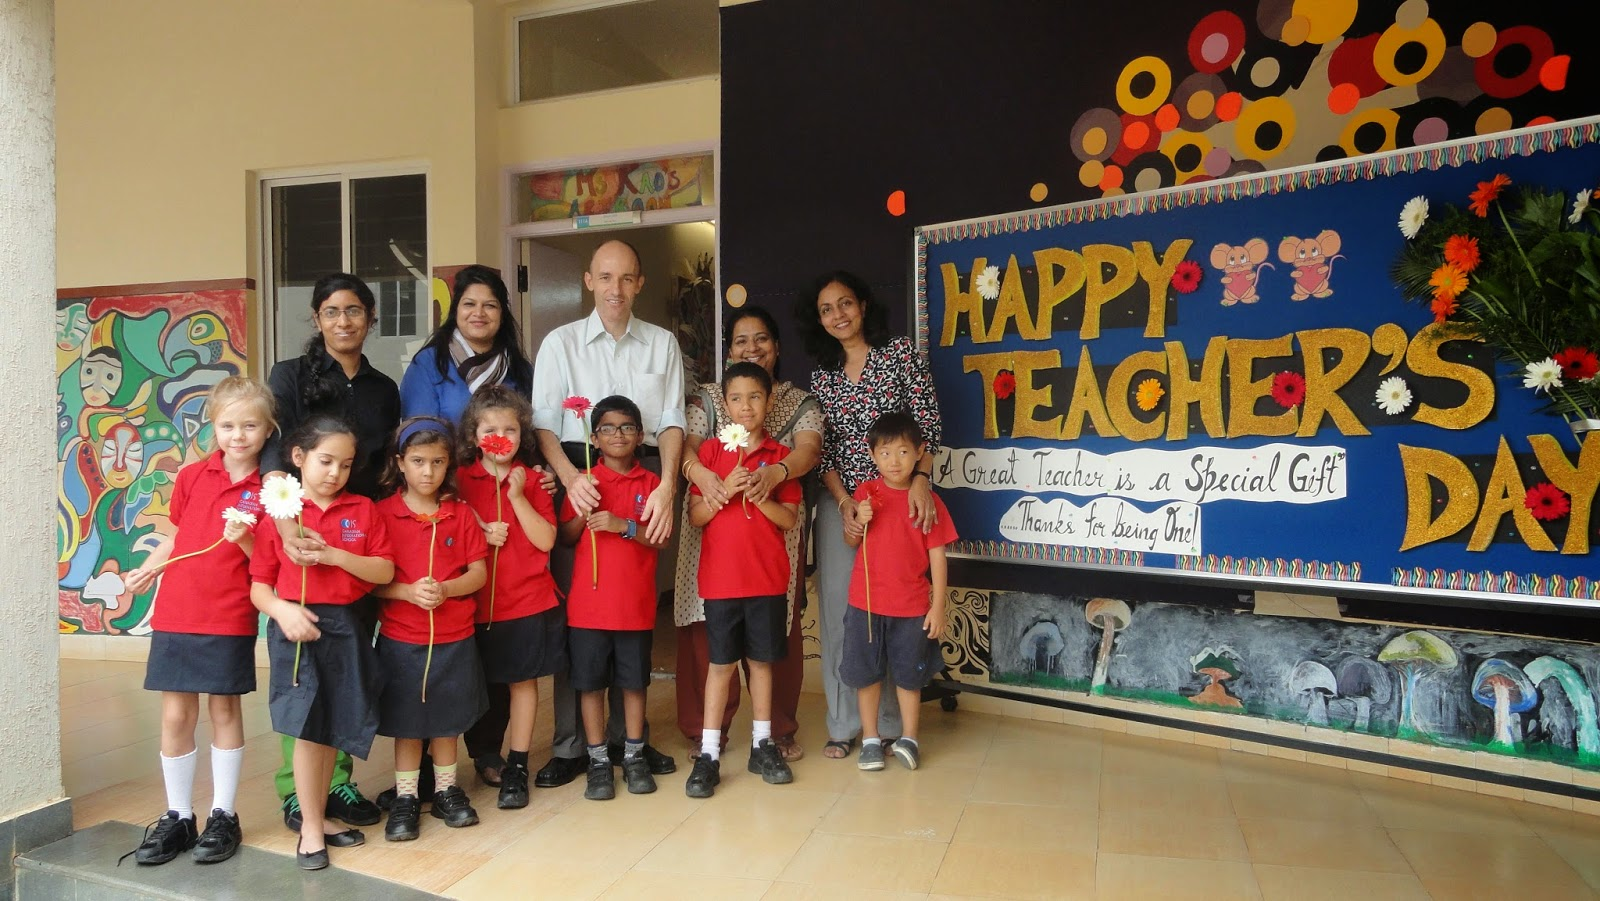 Teachers Day Celebration At Canadian International School